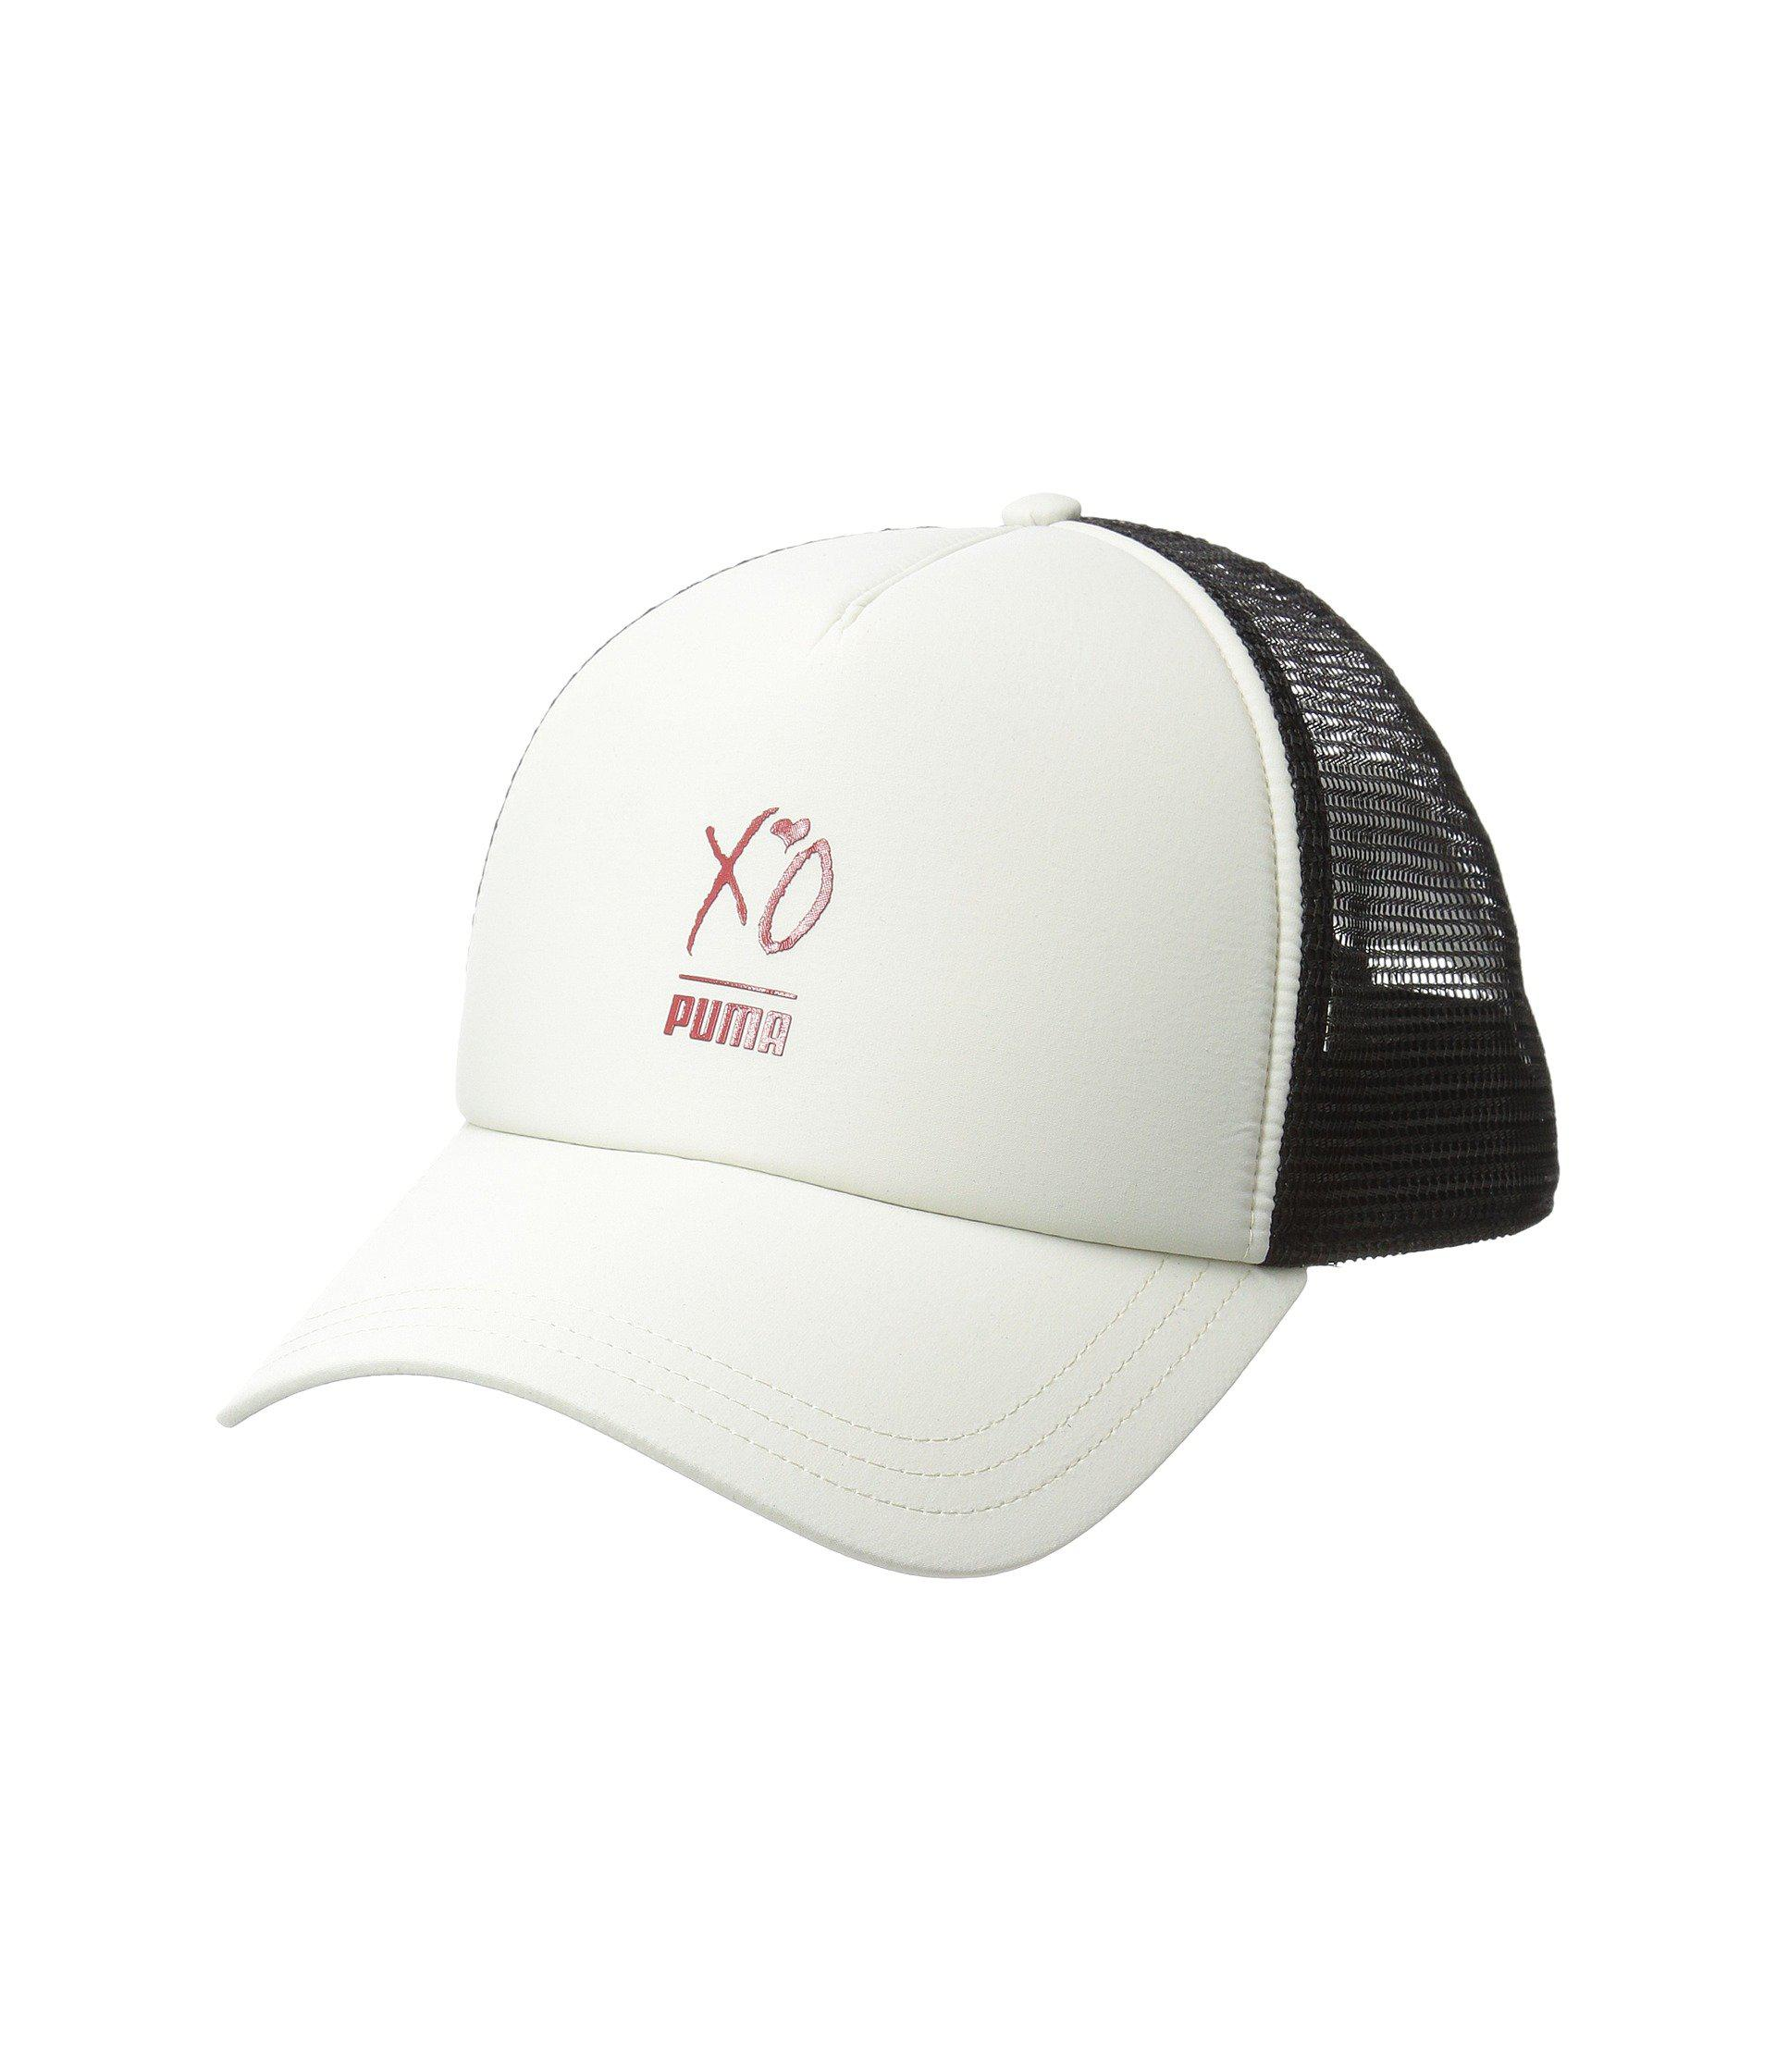 5e924b964c9 Lyst - PUMA X Xo By The Weeknd Trucker Cap (silver Birch) Caps in ...